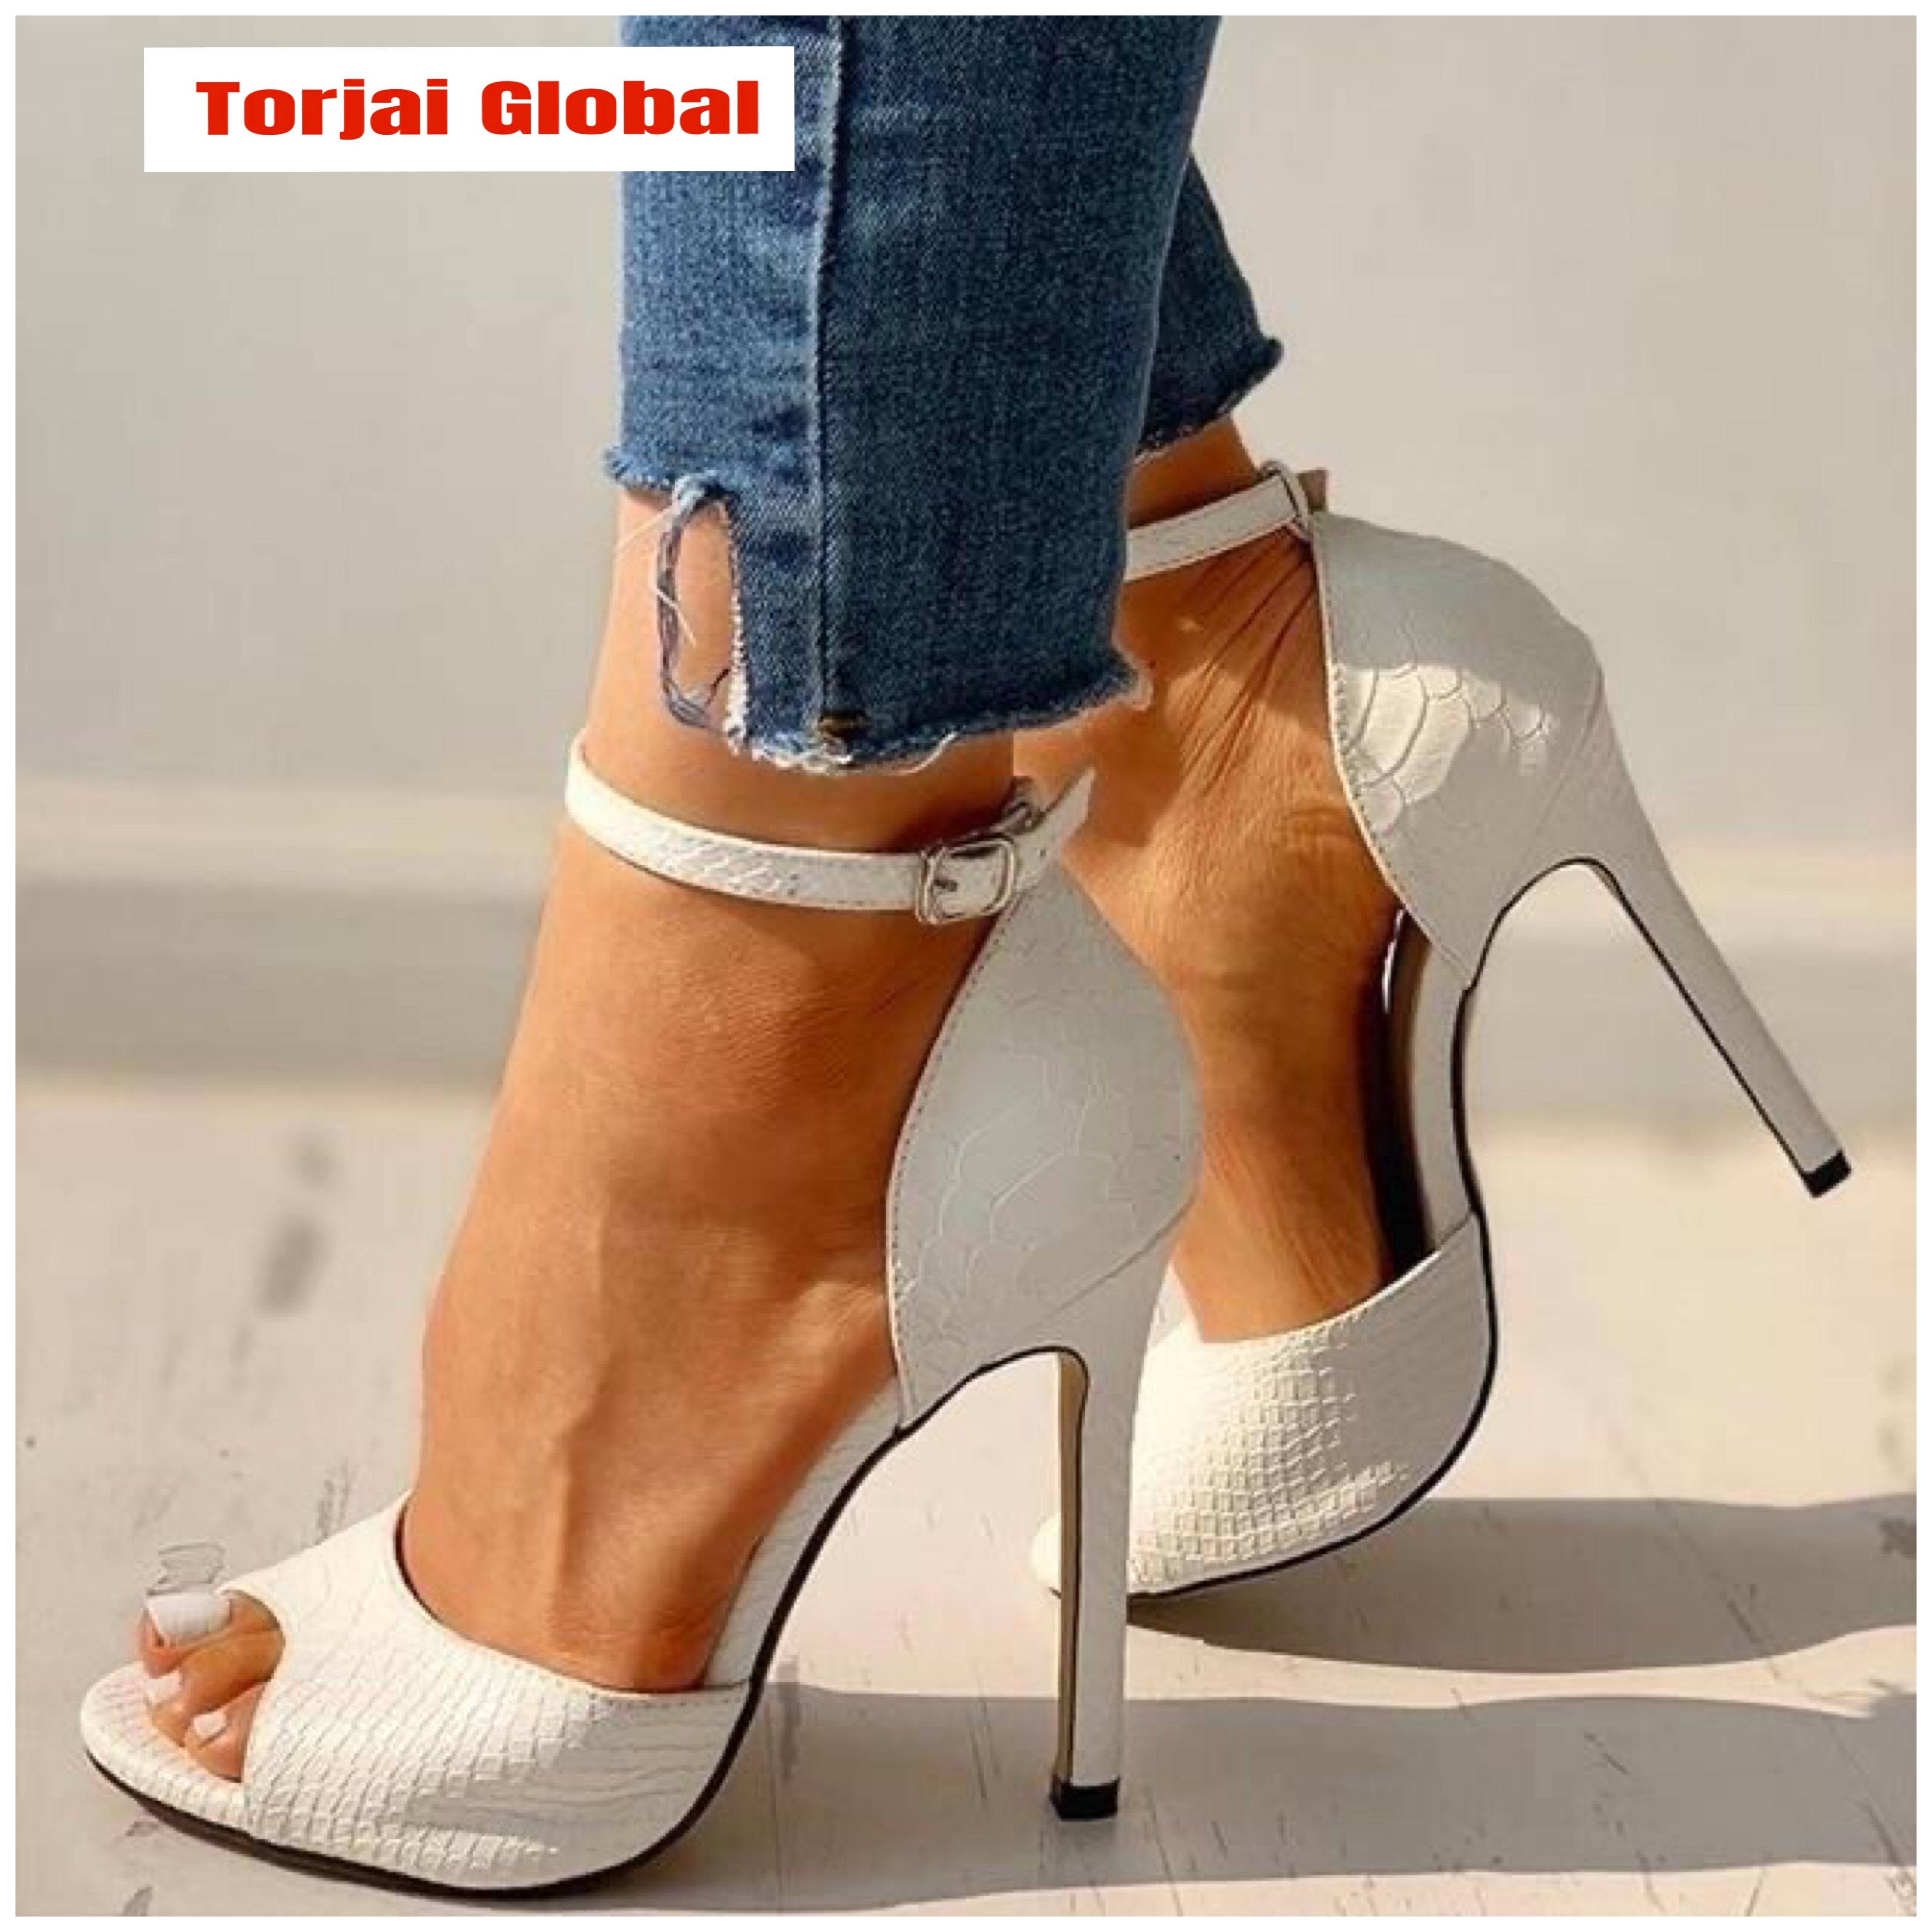 2020 New Women's High Heels - Torjai Global